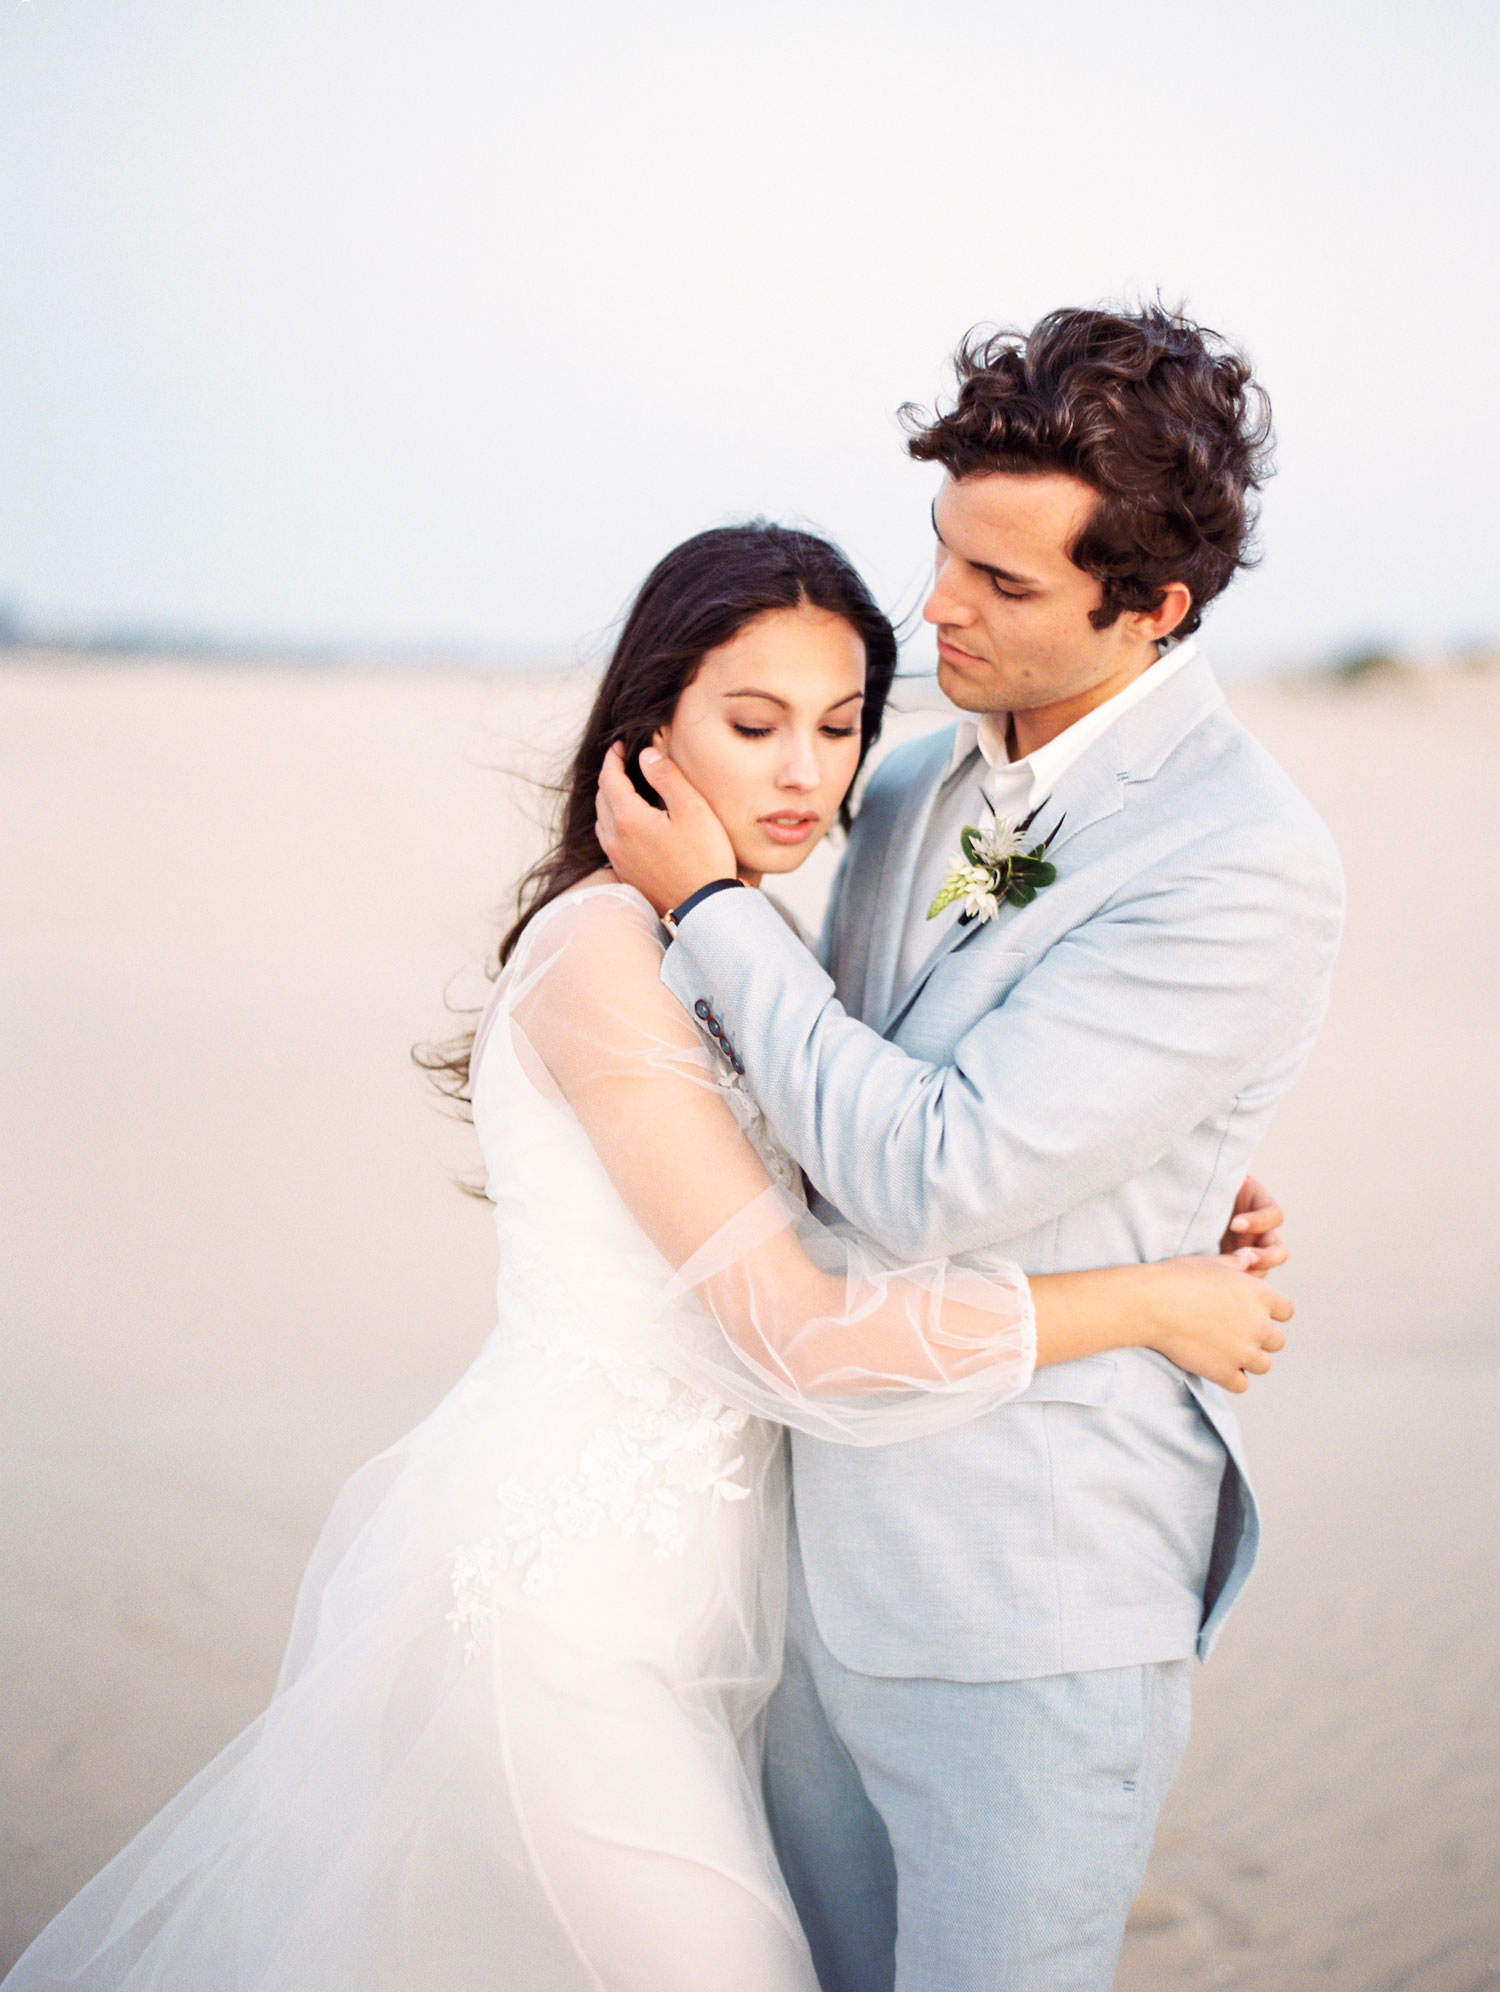 Check out  my latest featured work  on Wedding Wire